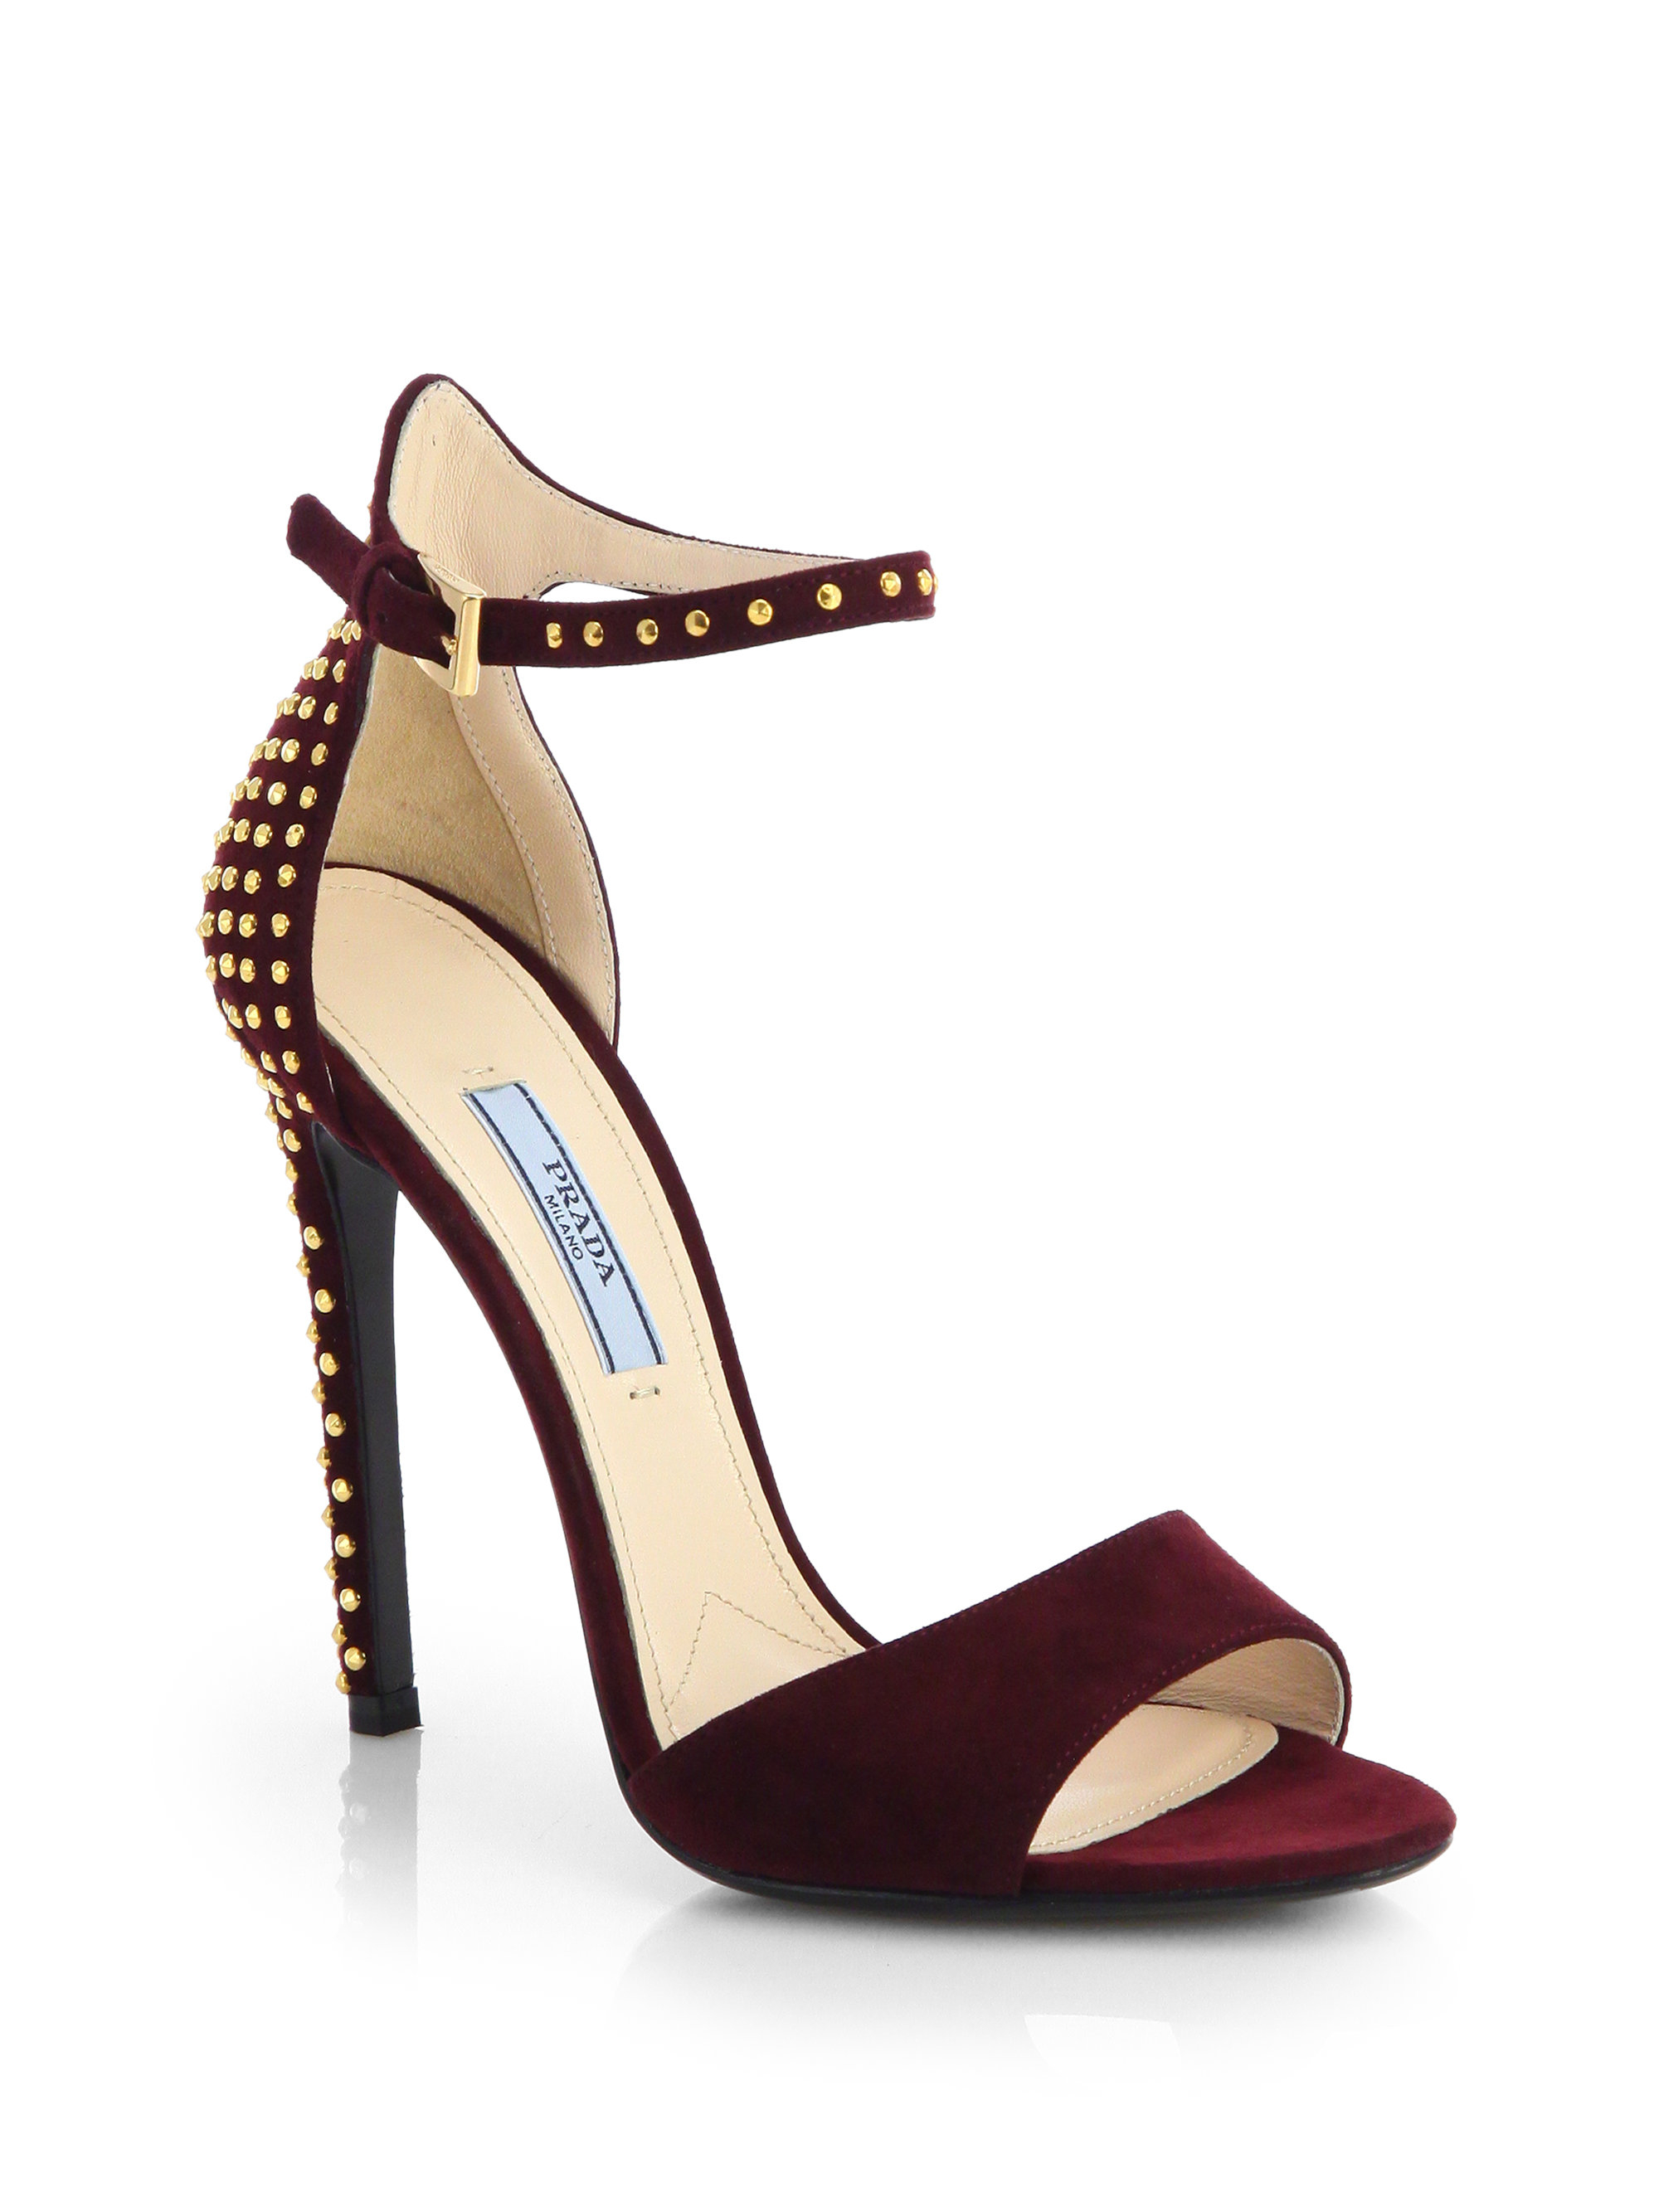 prada studded suede ankle strap sandals in red burgundy lyst. Black Bedroom Furniture Sets. Home Design Ideas